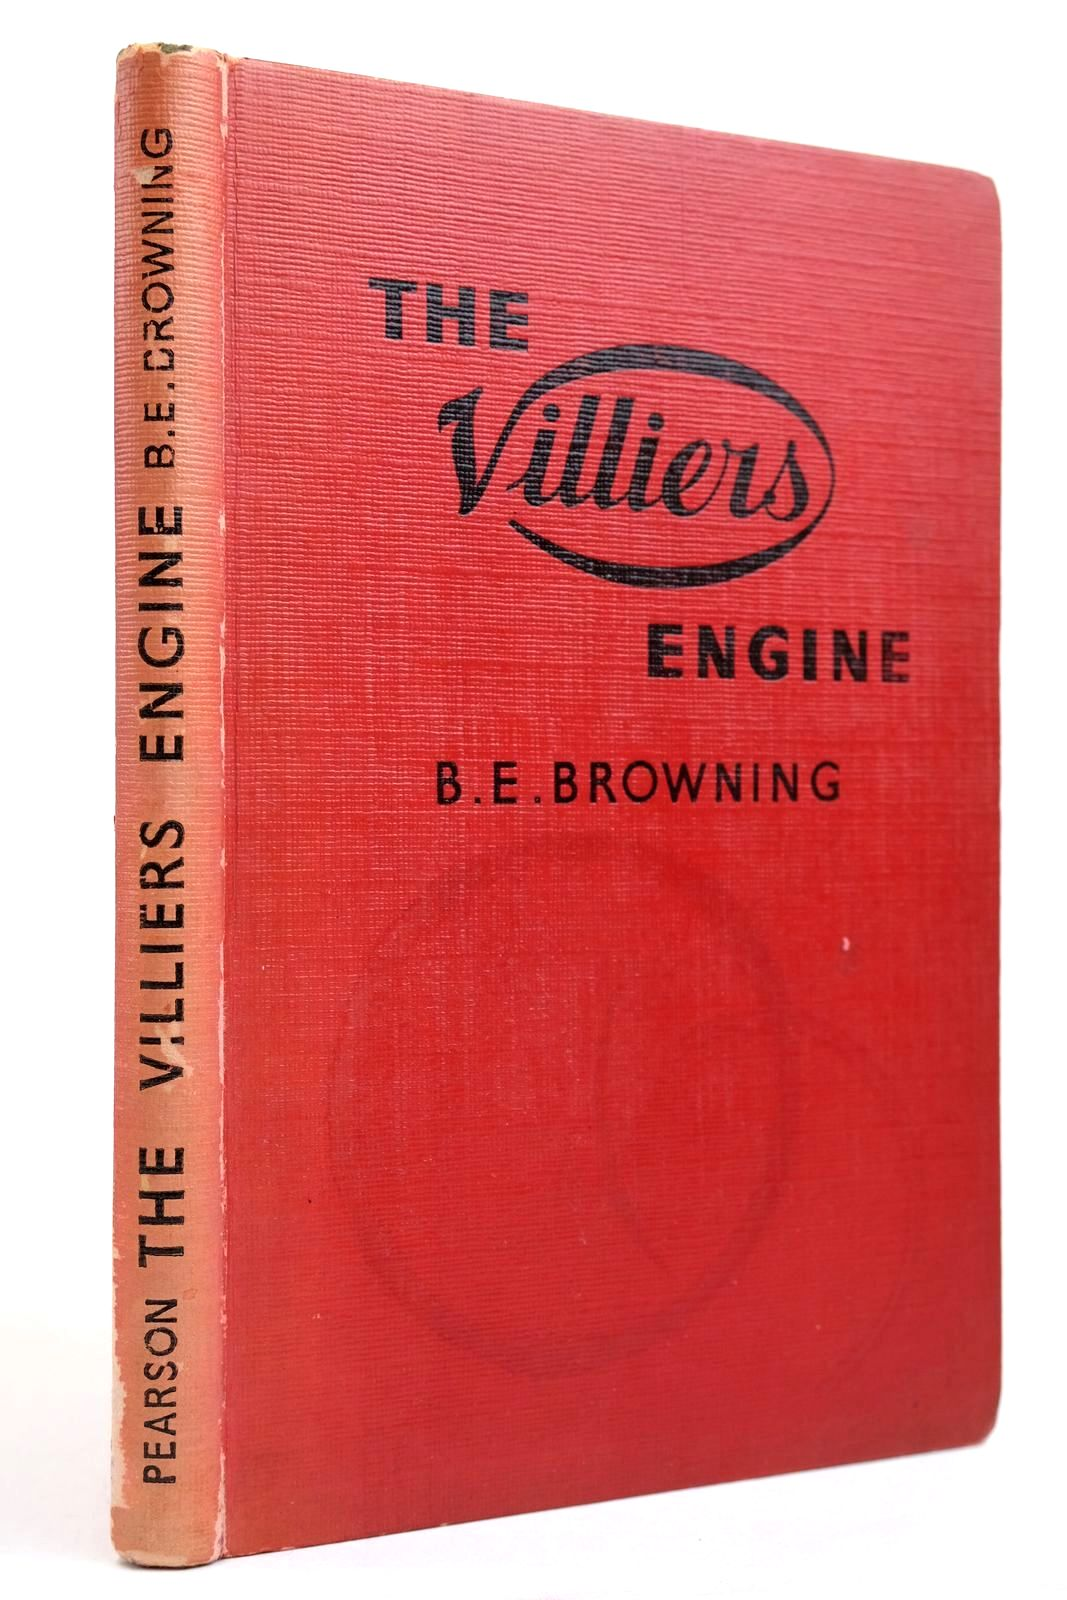 Photo of THE VILLIERS ENGINE- Stock Number: 2134347